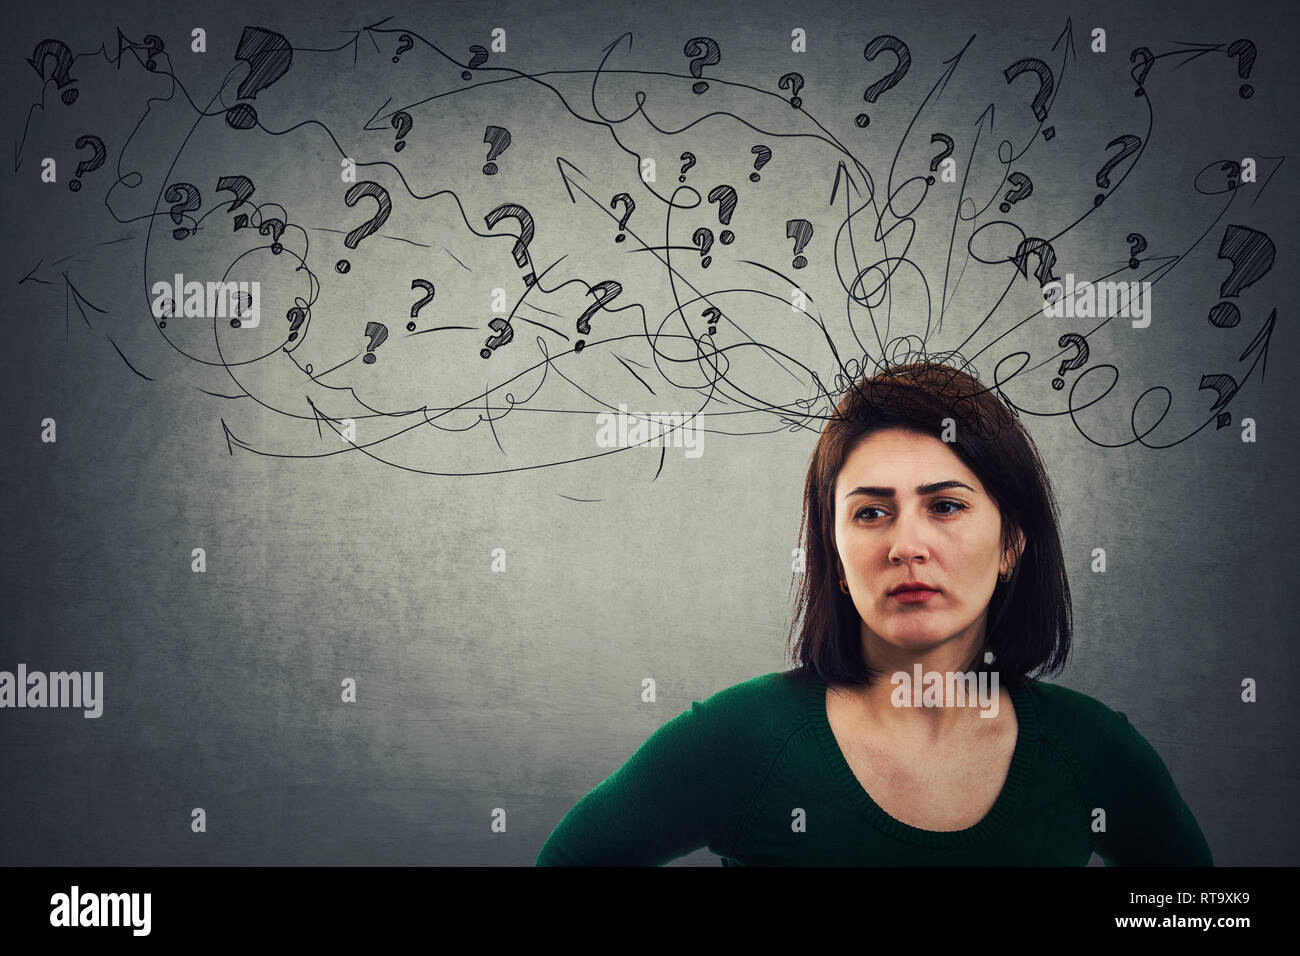 Serious and thoughtful young woman looking sad having a lot of questions like a mess coming out of. Anxiety stress and headache feeling. - Stock Image